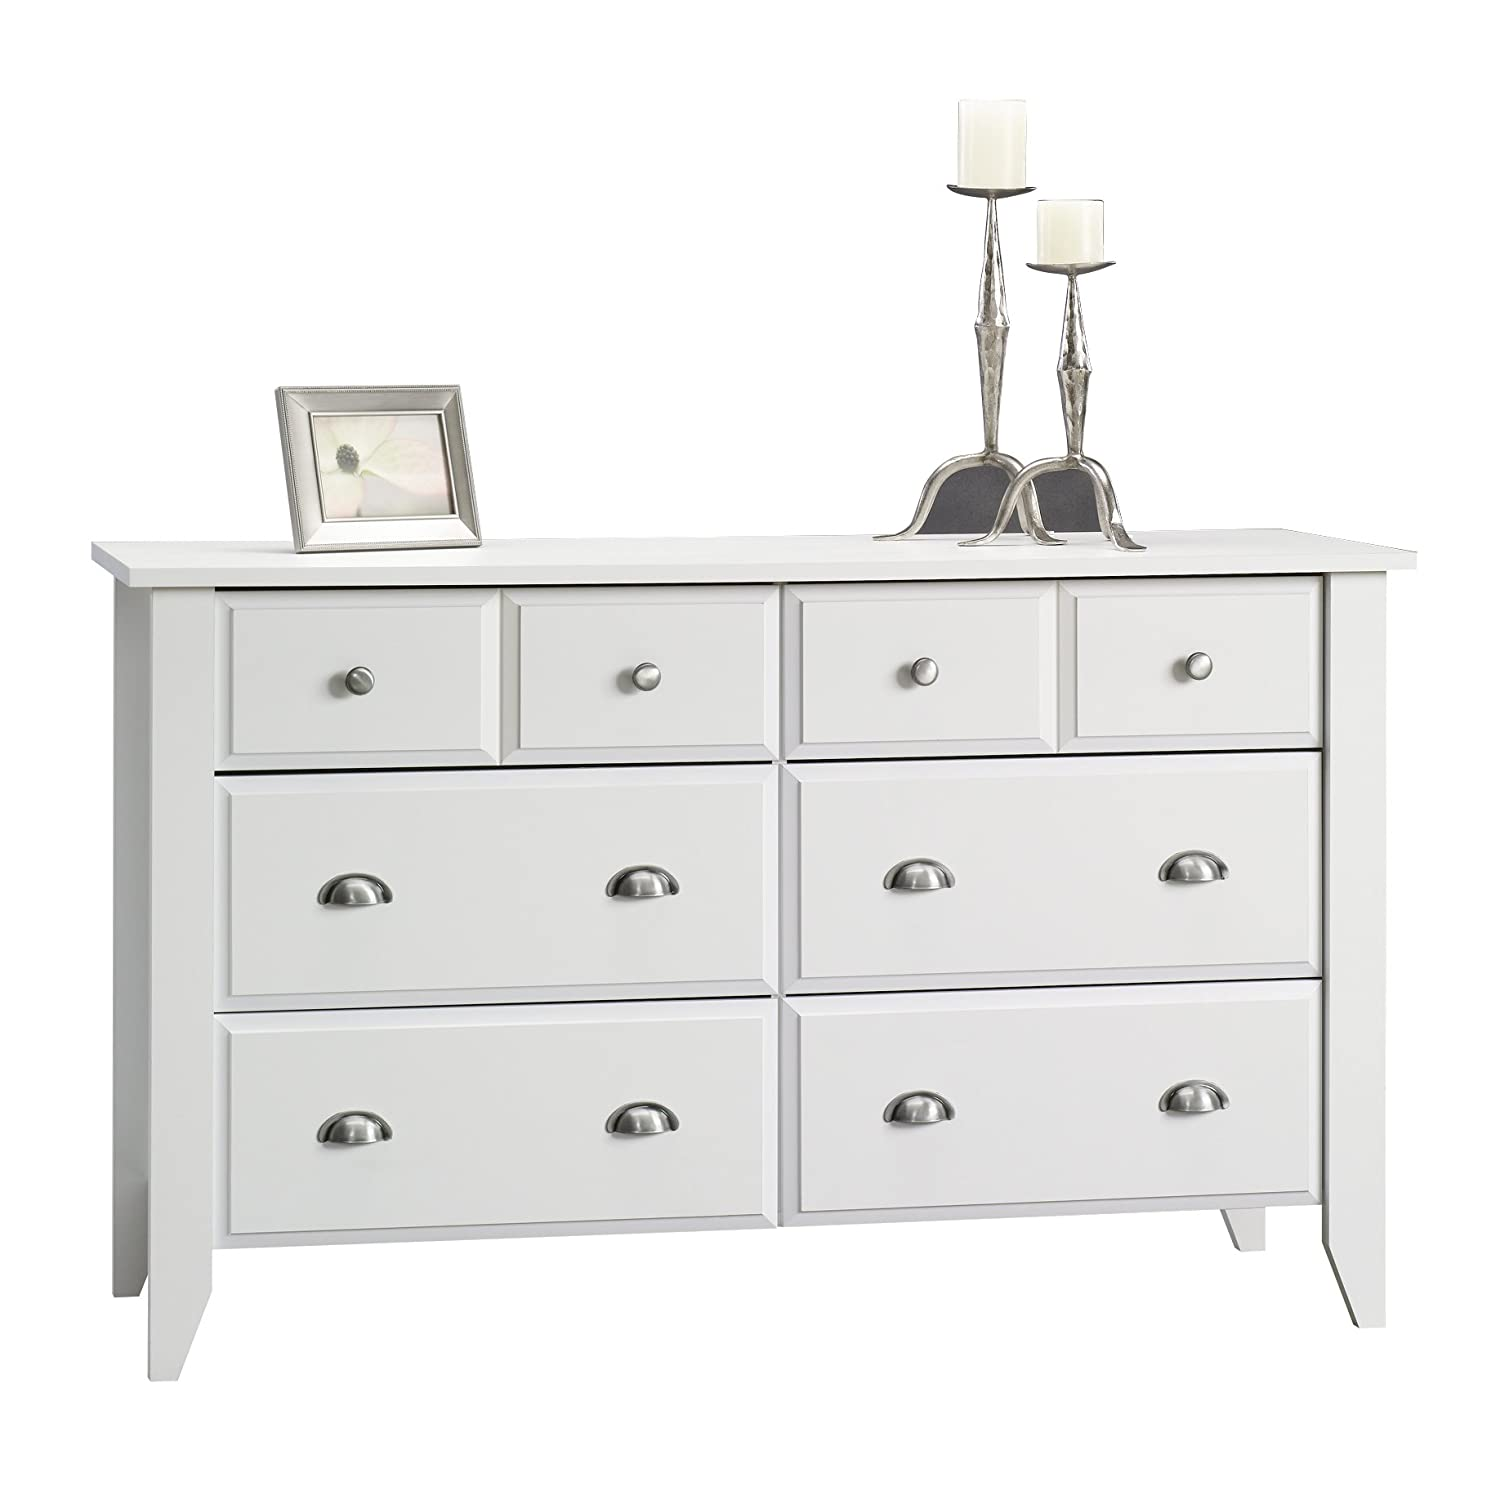 Large Bedroom Dresser Storage Drawer Modern 6 Wood Chest Of Drawers White Bro